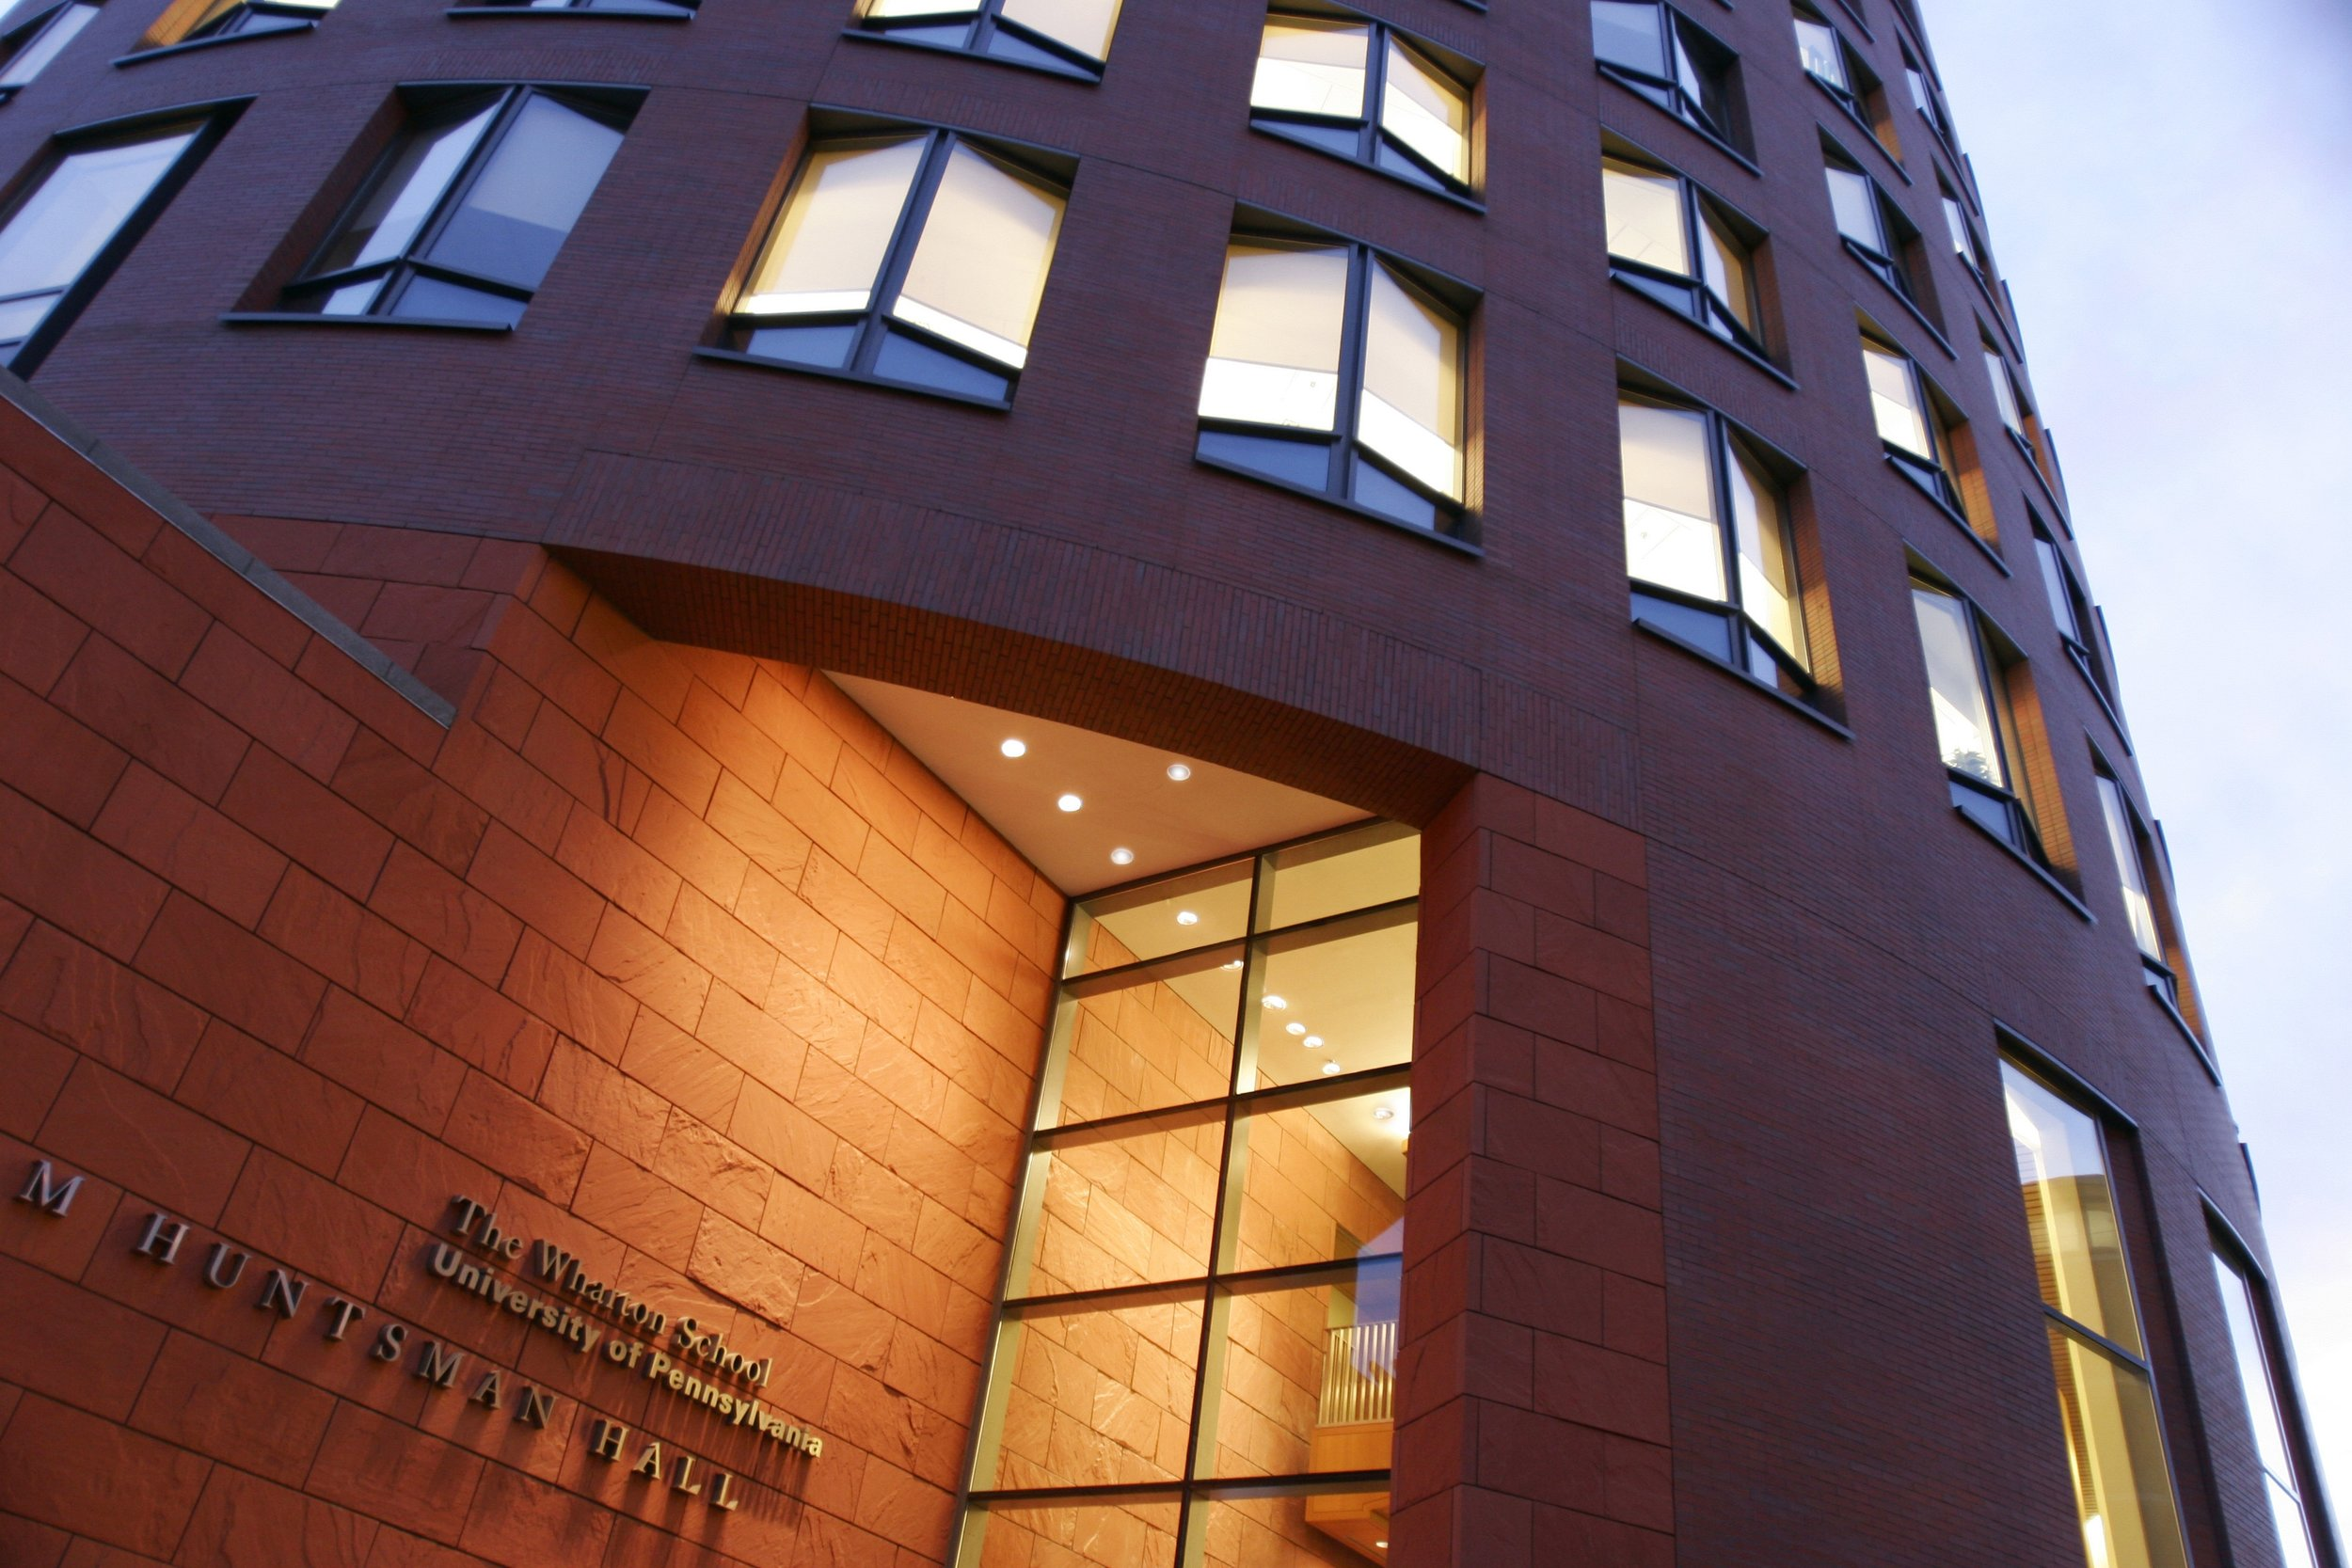 Powerful Content in Business &Finance - in conjunction with the Wharton School